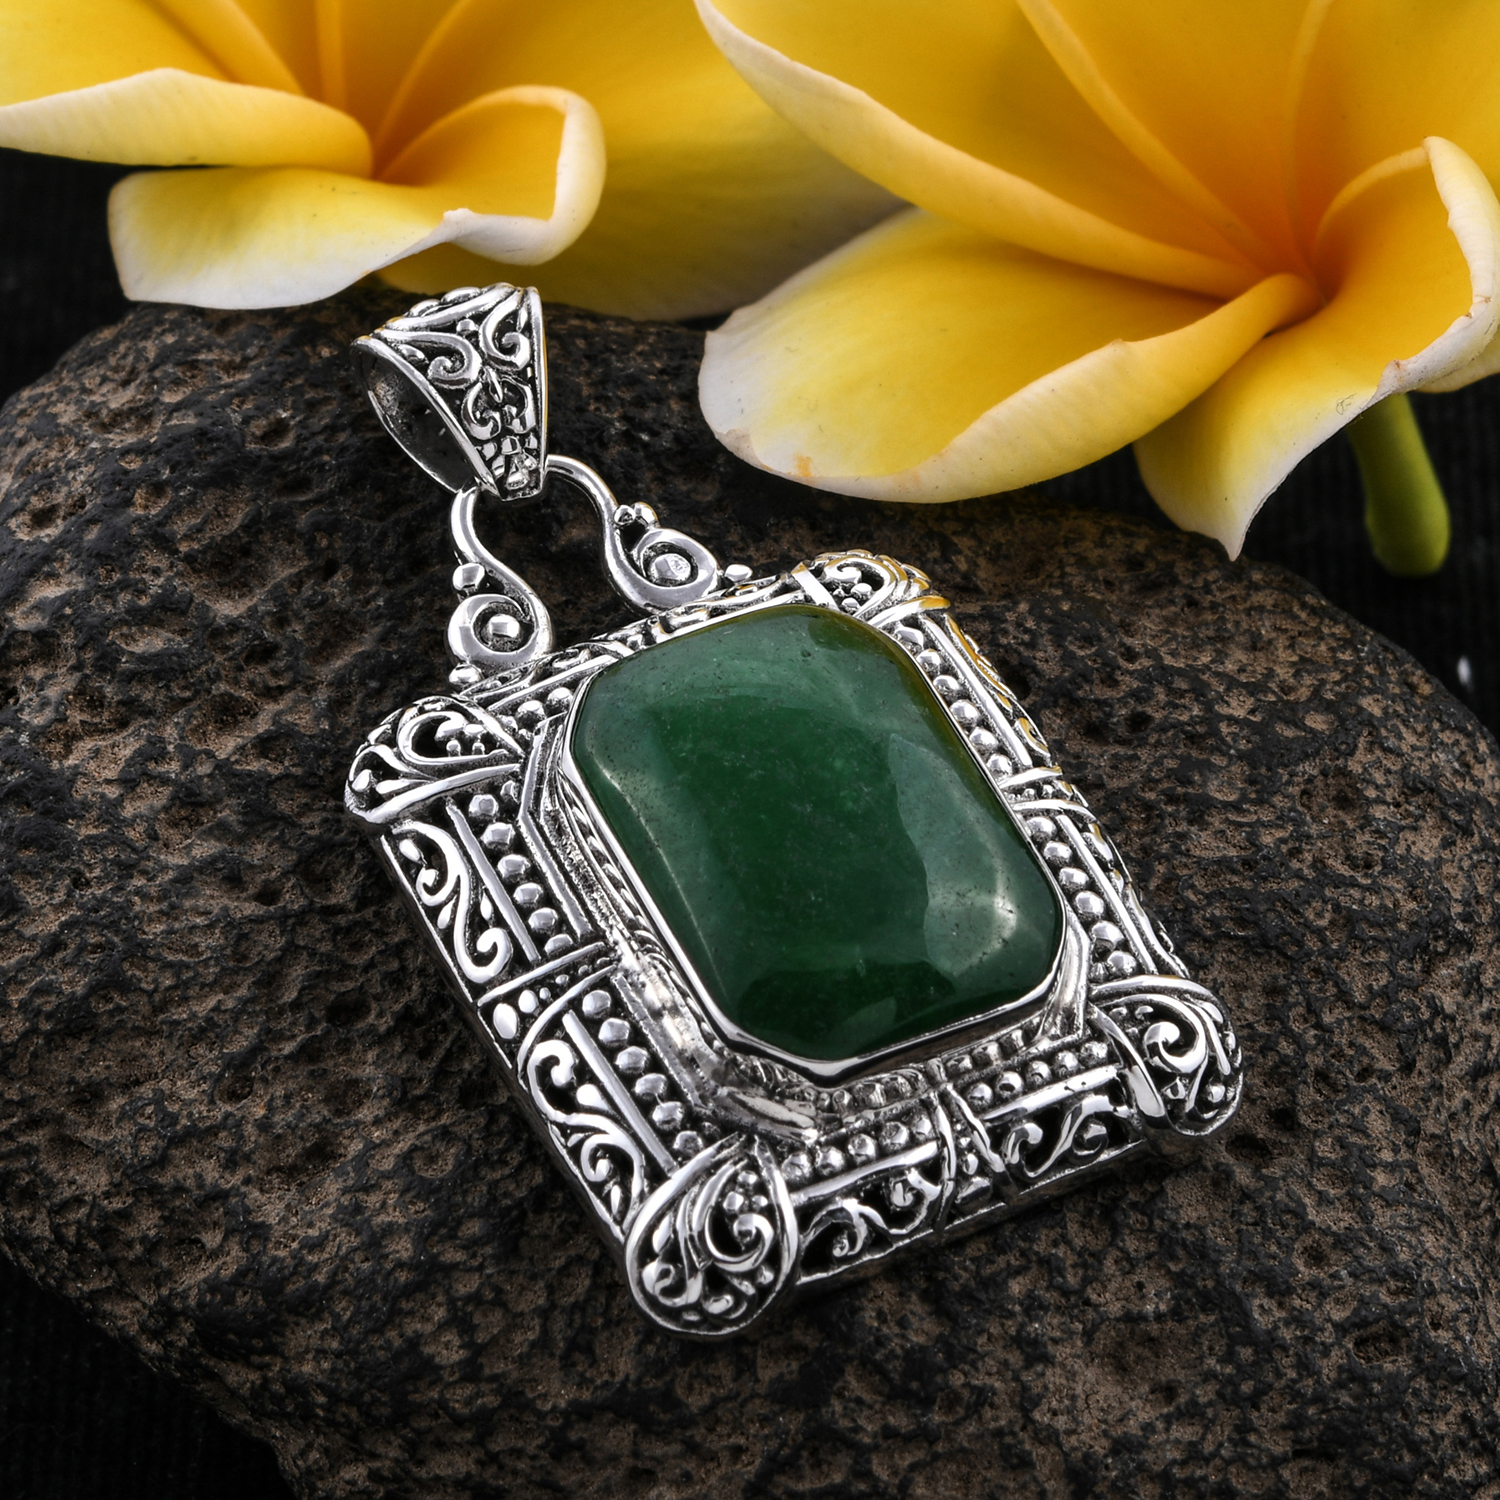 Bali crafted jade pendant on gray stone.